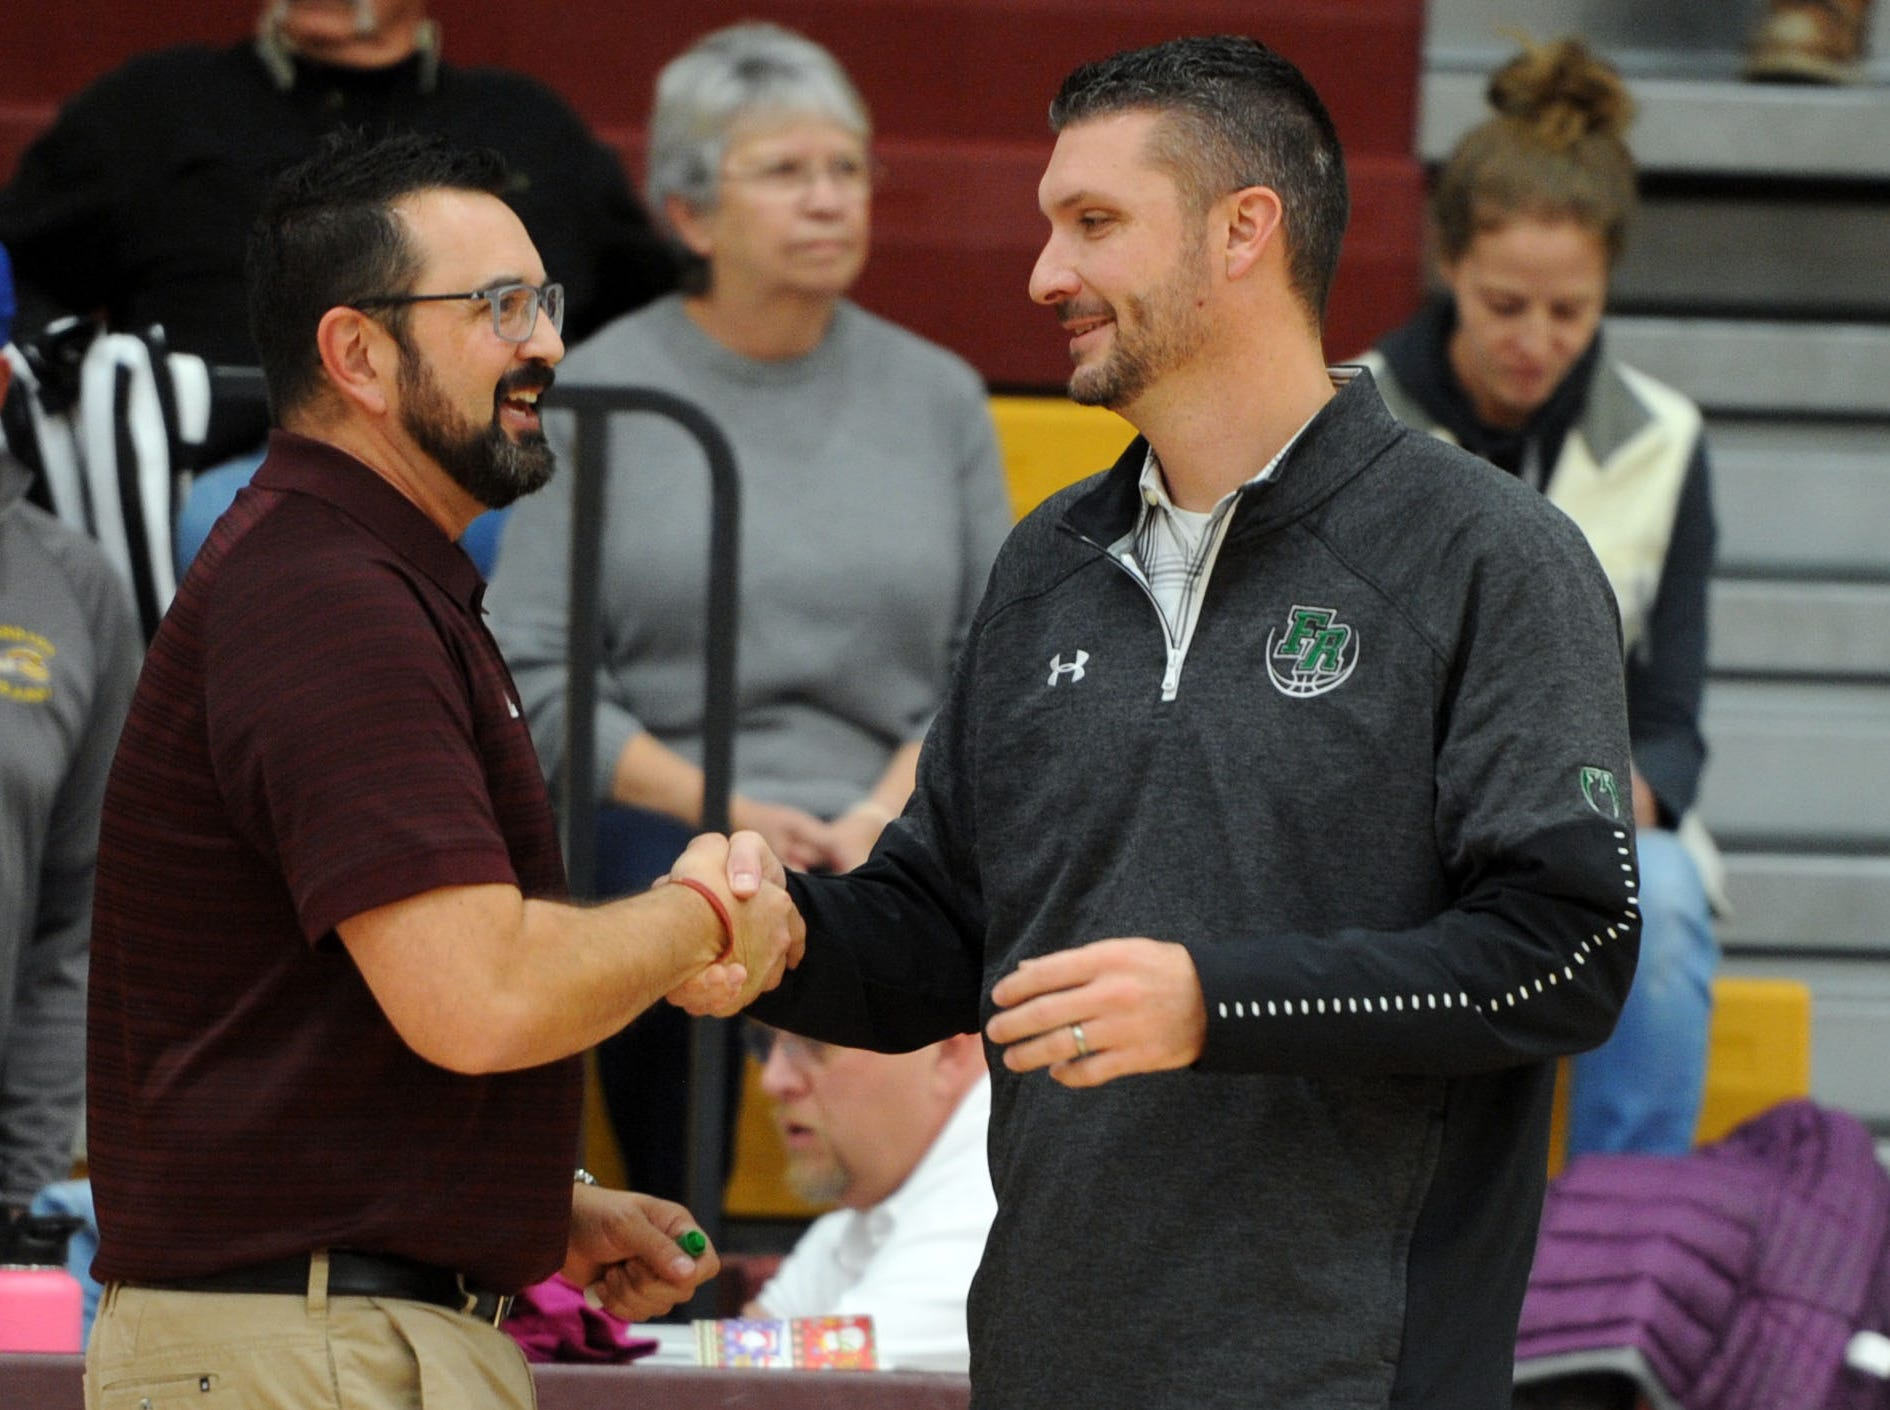 Windsor head coach Jim Porth, right, greets Fossil Ridge head coach, Chad Salz, before the game Thursday at Windsor High School.